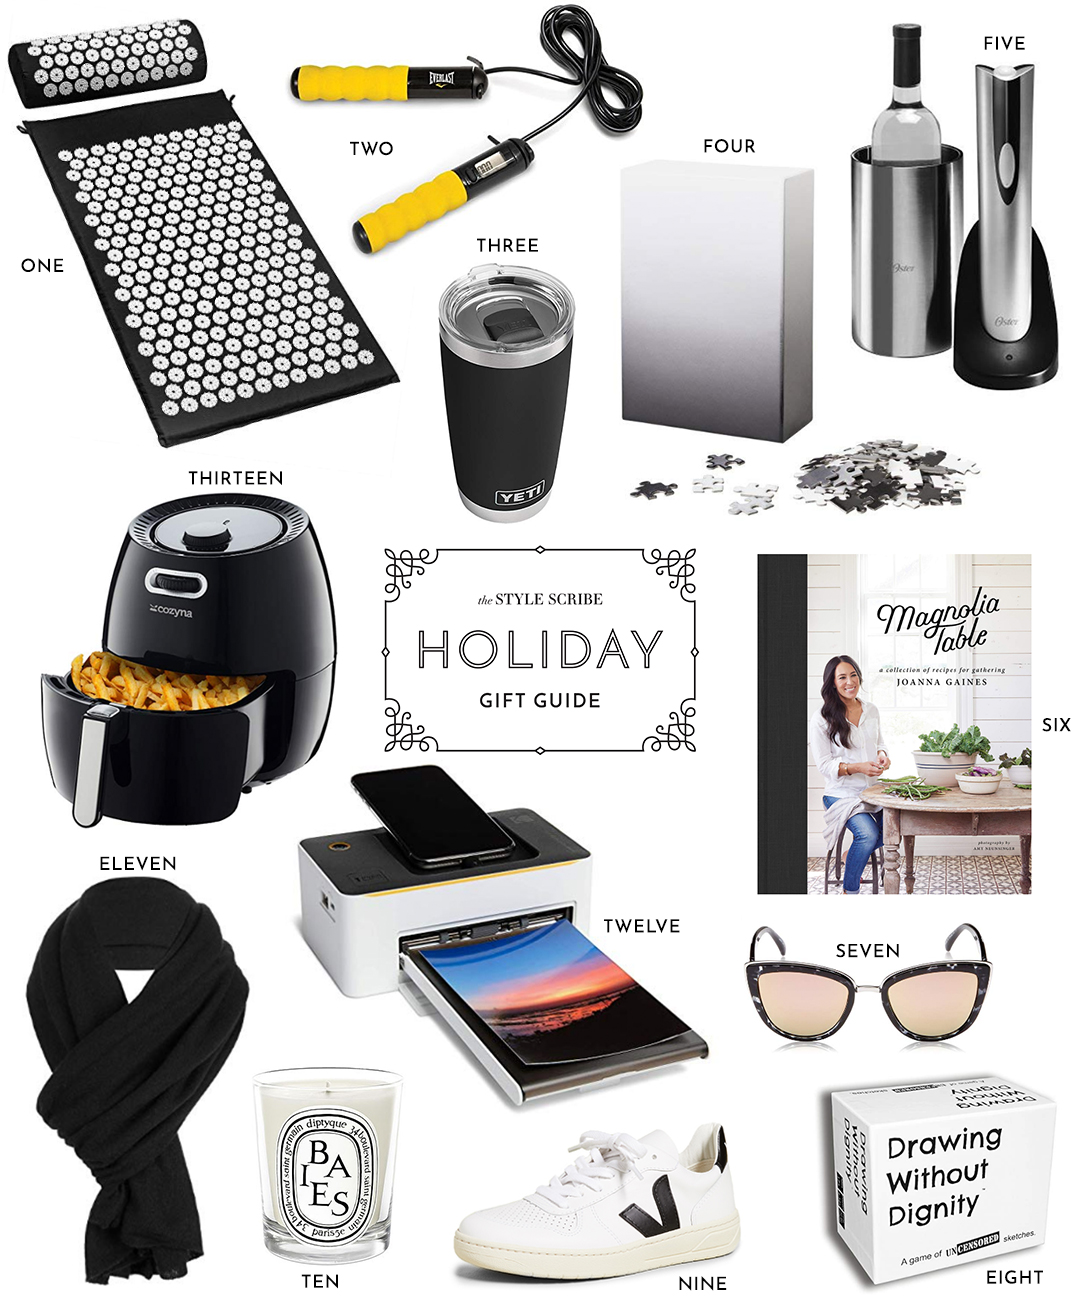 HOLIDAY GIFT GUIDE // BEST LAST MINUTE GIFTS FROM AMAZON